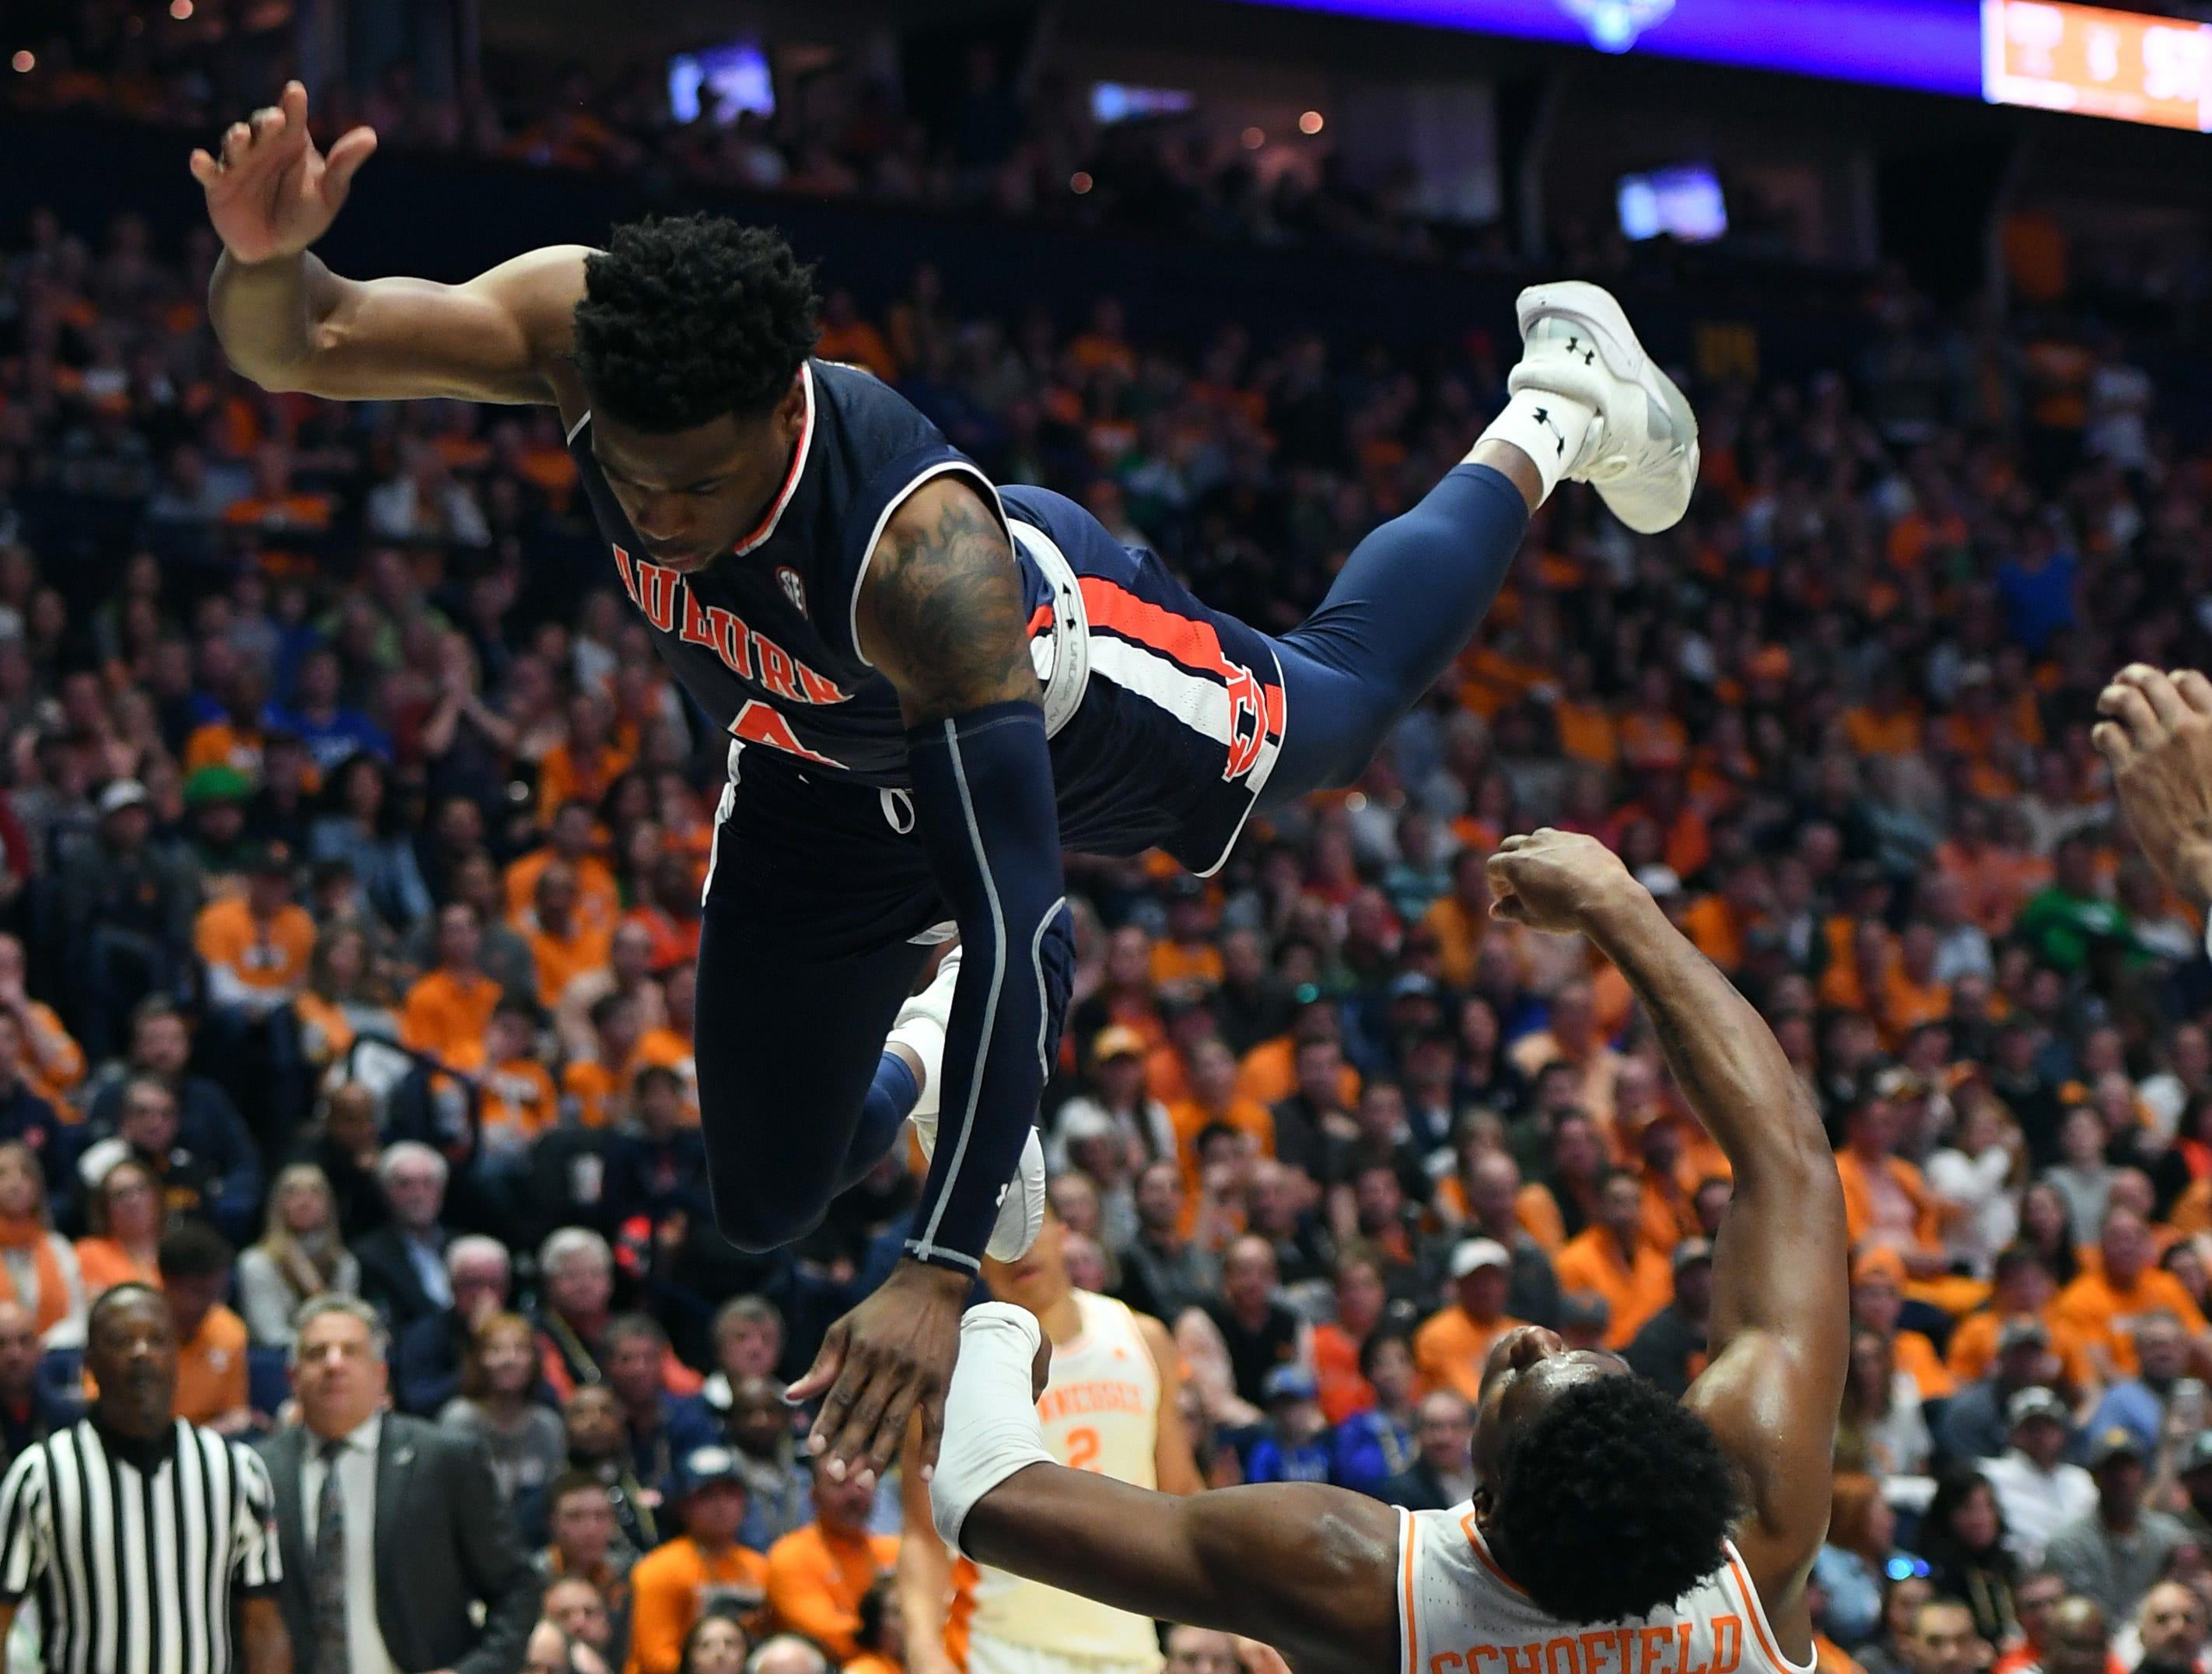 Mar 17, 2019; Nashville, TN, USA; Auburn Tigers guard Malik Dunbar (4) shoots the ball over Tennessee Volunteers guard Admiral Schofield (5) on a drive to the basket during the second half in the SEC conference tournament championship game at Bridgestone Arena. Mandatory Credit: Christopher Hanewinckel-USA TODAY Sports